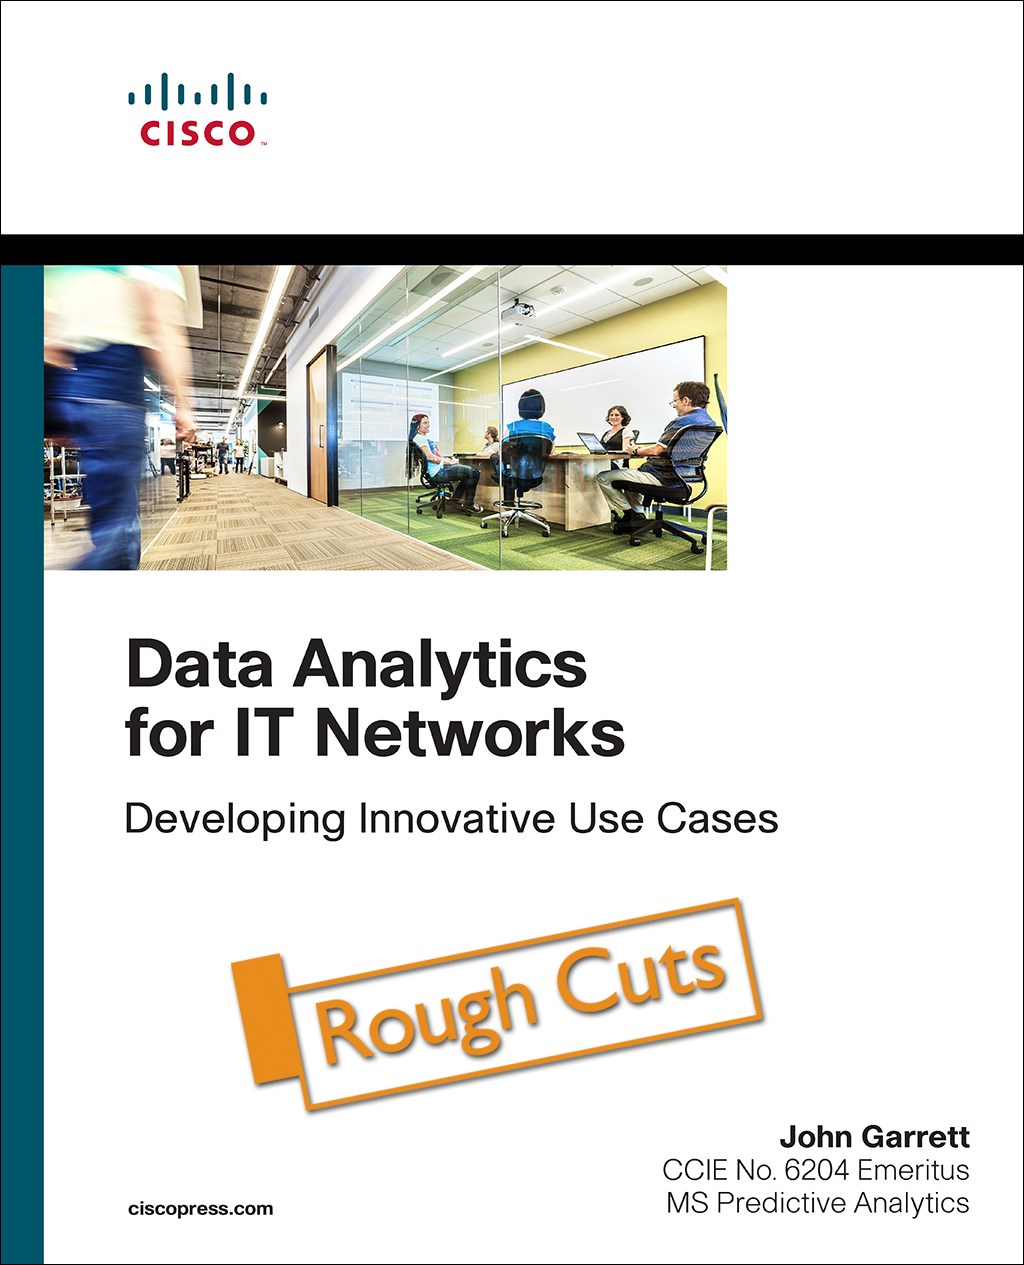 Data Analytics for IT Networks: Developing Innovative Use Cases, Rough Cuts